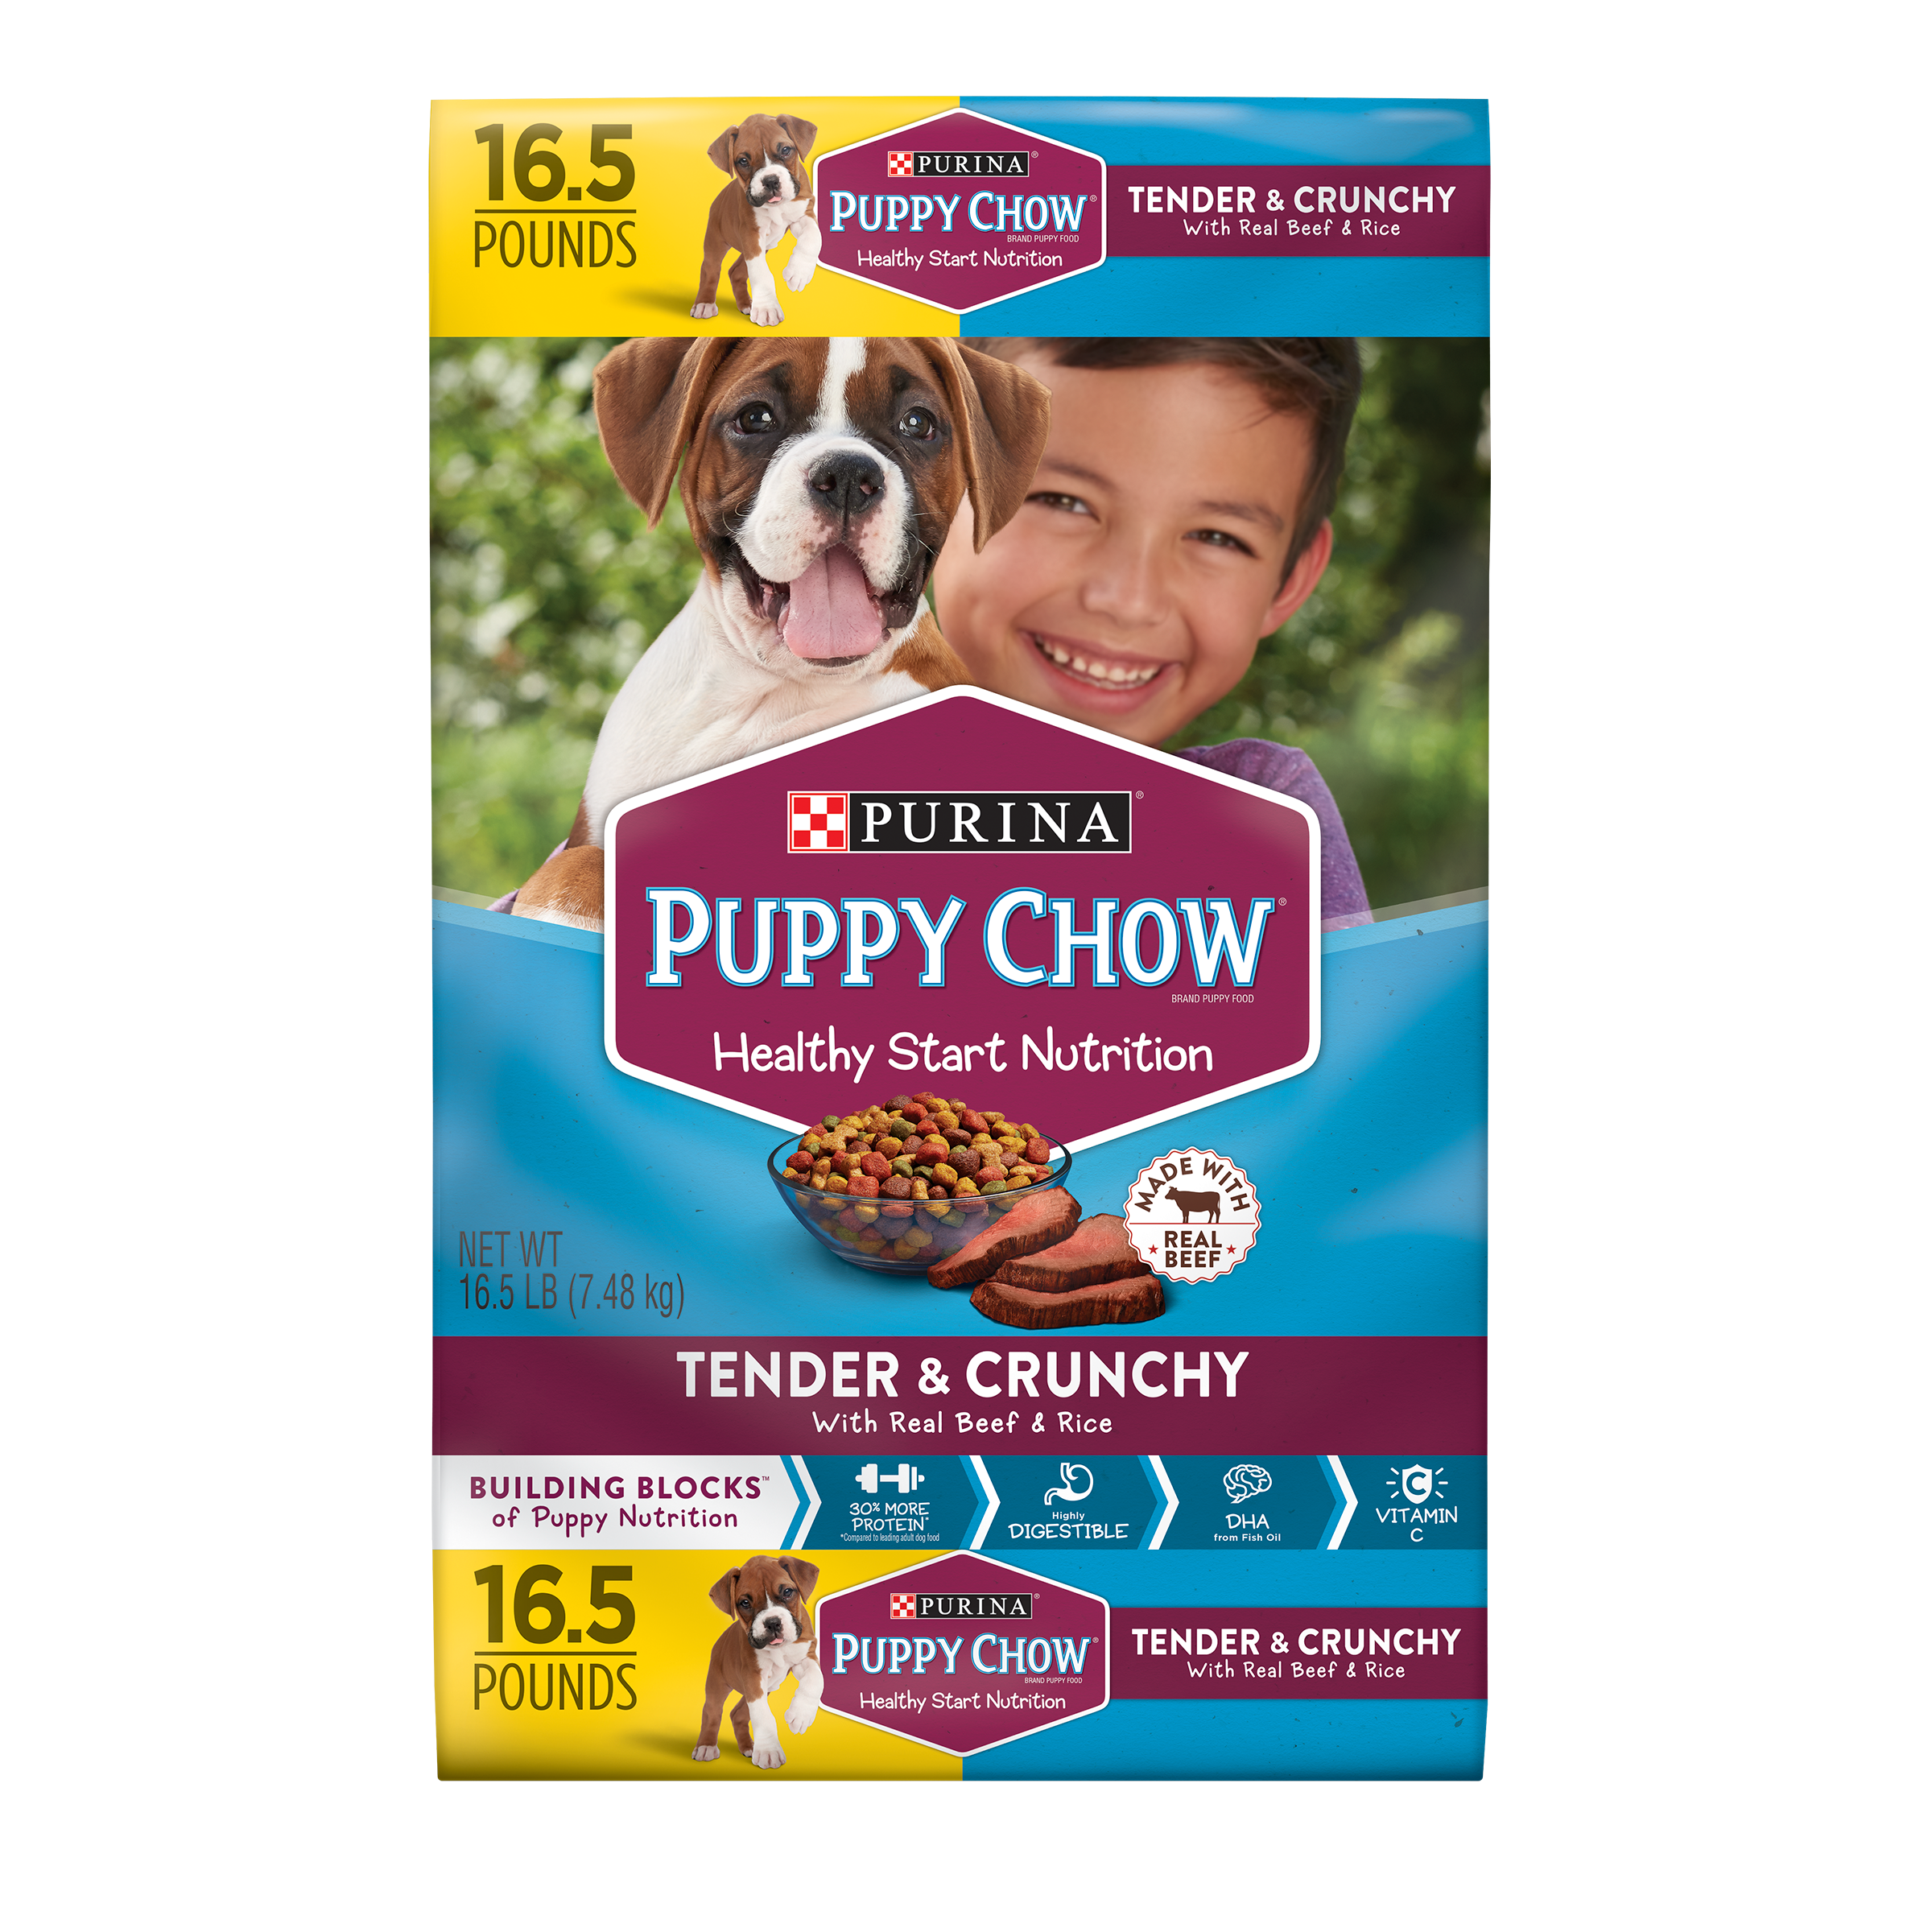 Purina Puppy Chow Tender & Crunchy Dry Puppy Food 16.5 lb. Bag by Nestle Purina Petcare Company